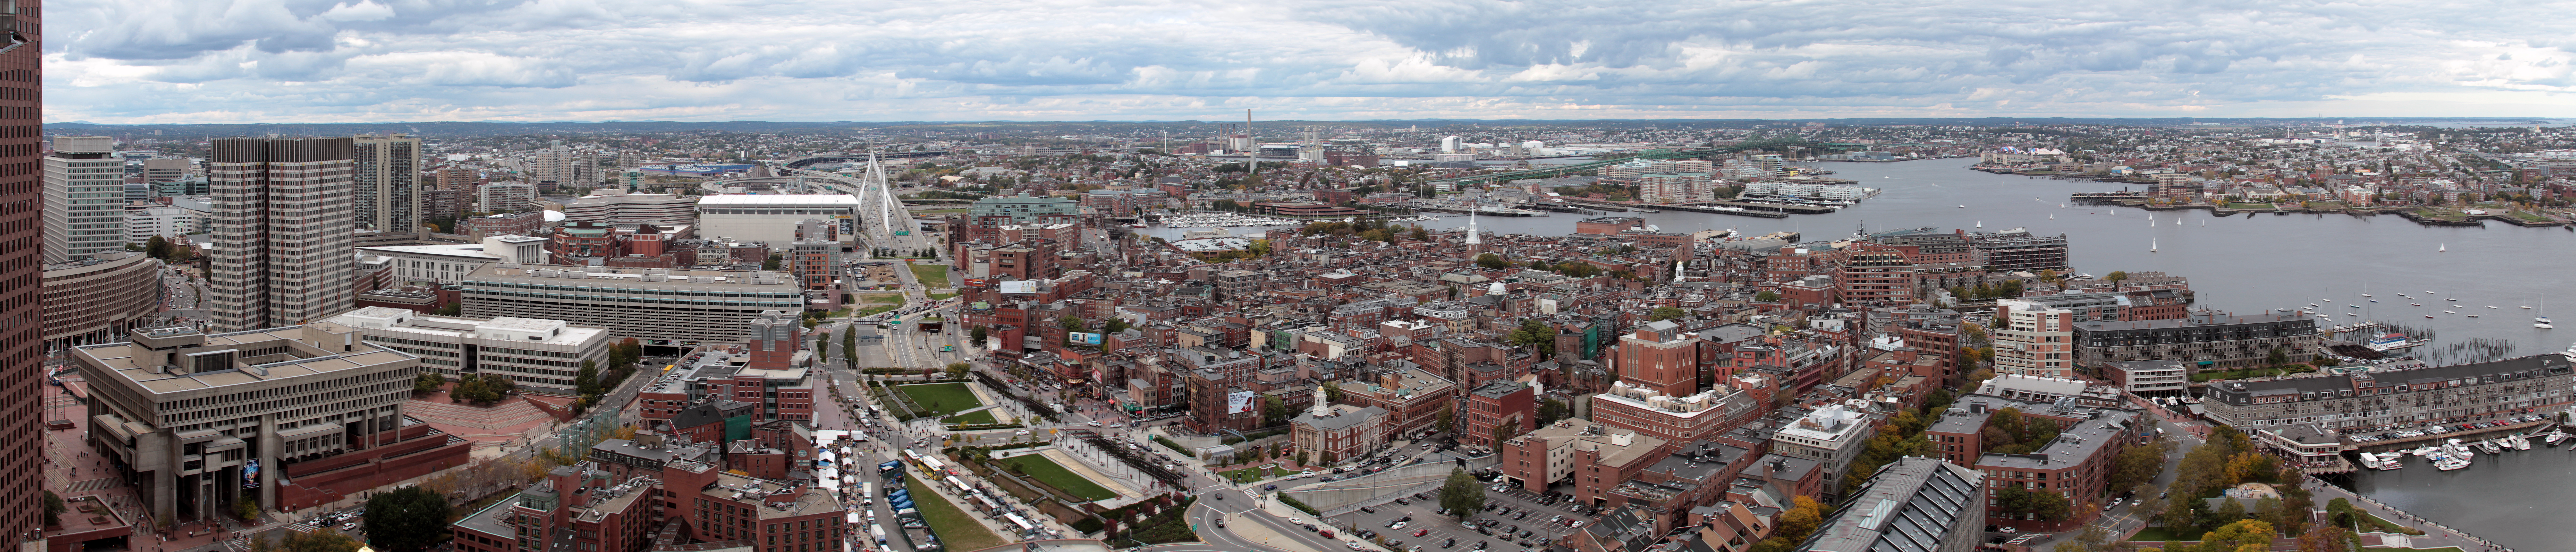 By Rene Schwietzke from Jena, Germany - Panorama of North Boston, CC BY 2.0, https://commons.wikimedia.org/w/index.php?curid=17786973